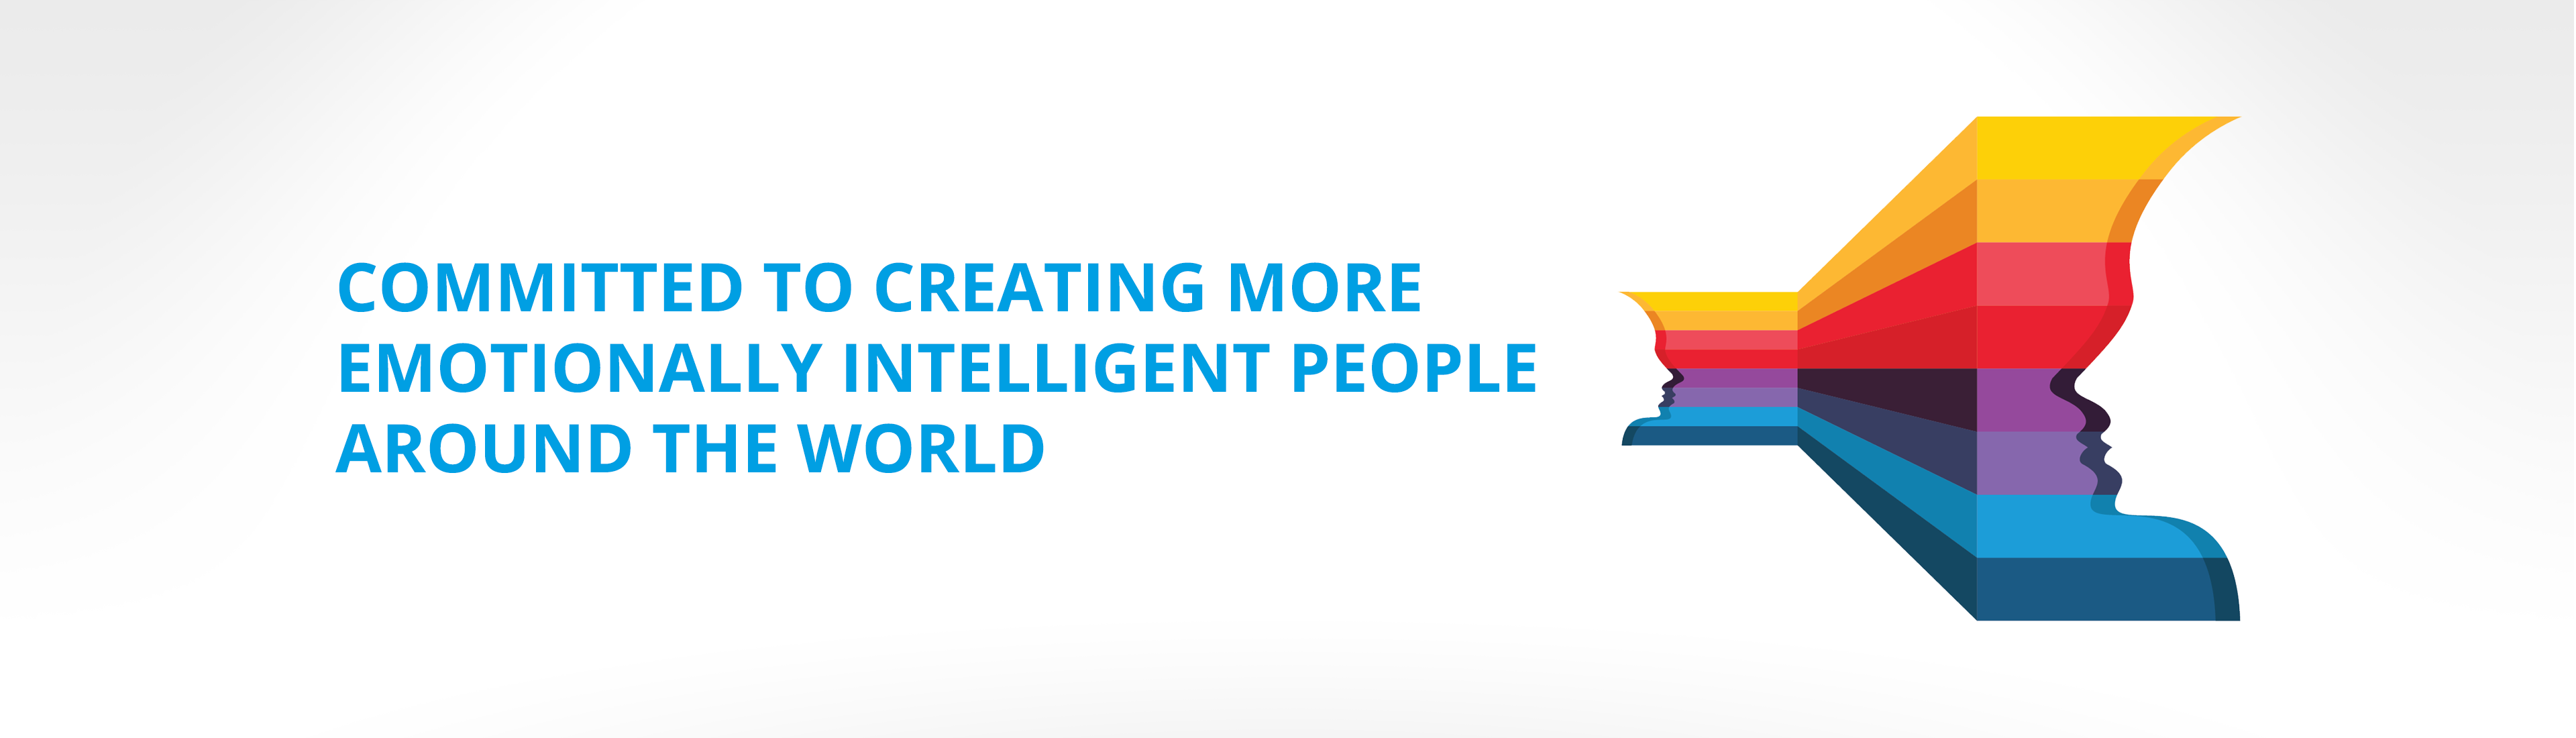 Genos - Committed to creating more emotionally intelligent people around the world